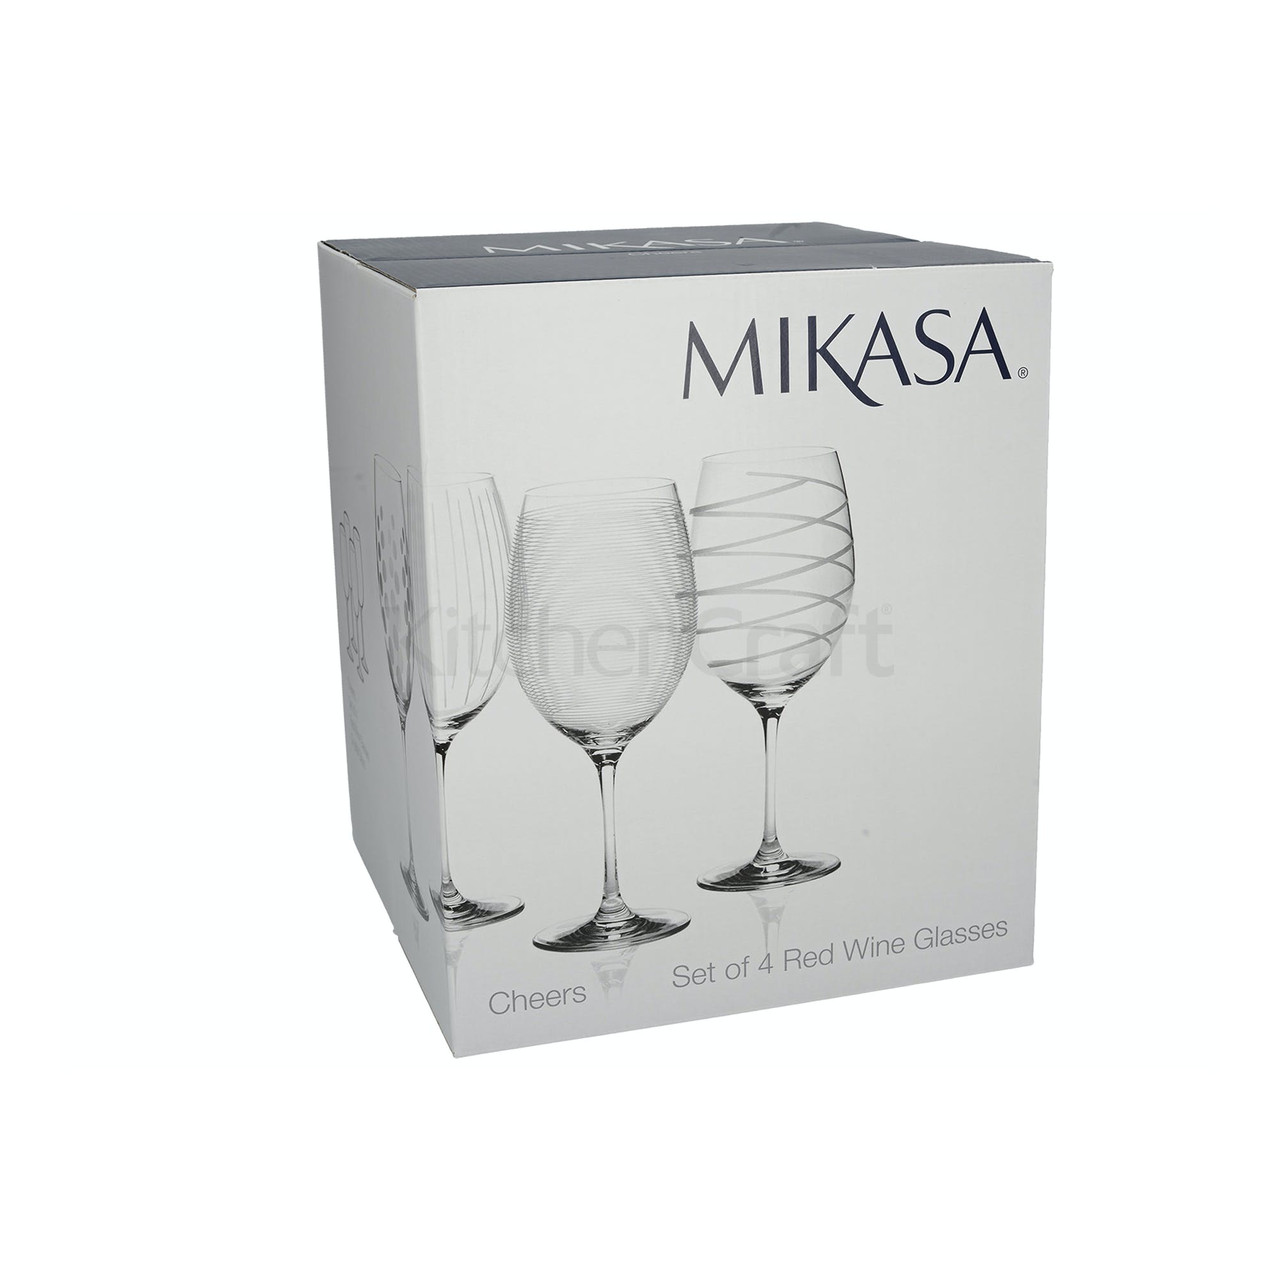 Mikasa Cheers Set Of 4 Red Wine Glasses (LOCAL DELIVERY ONLY)